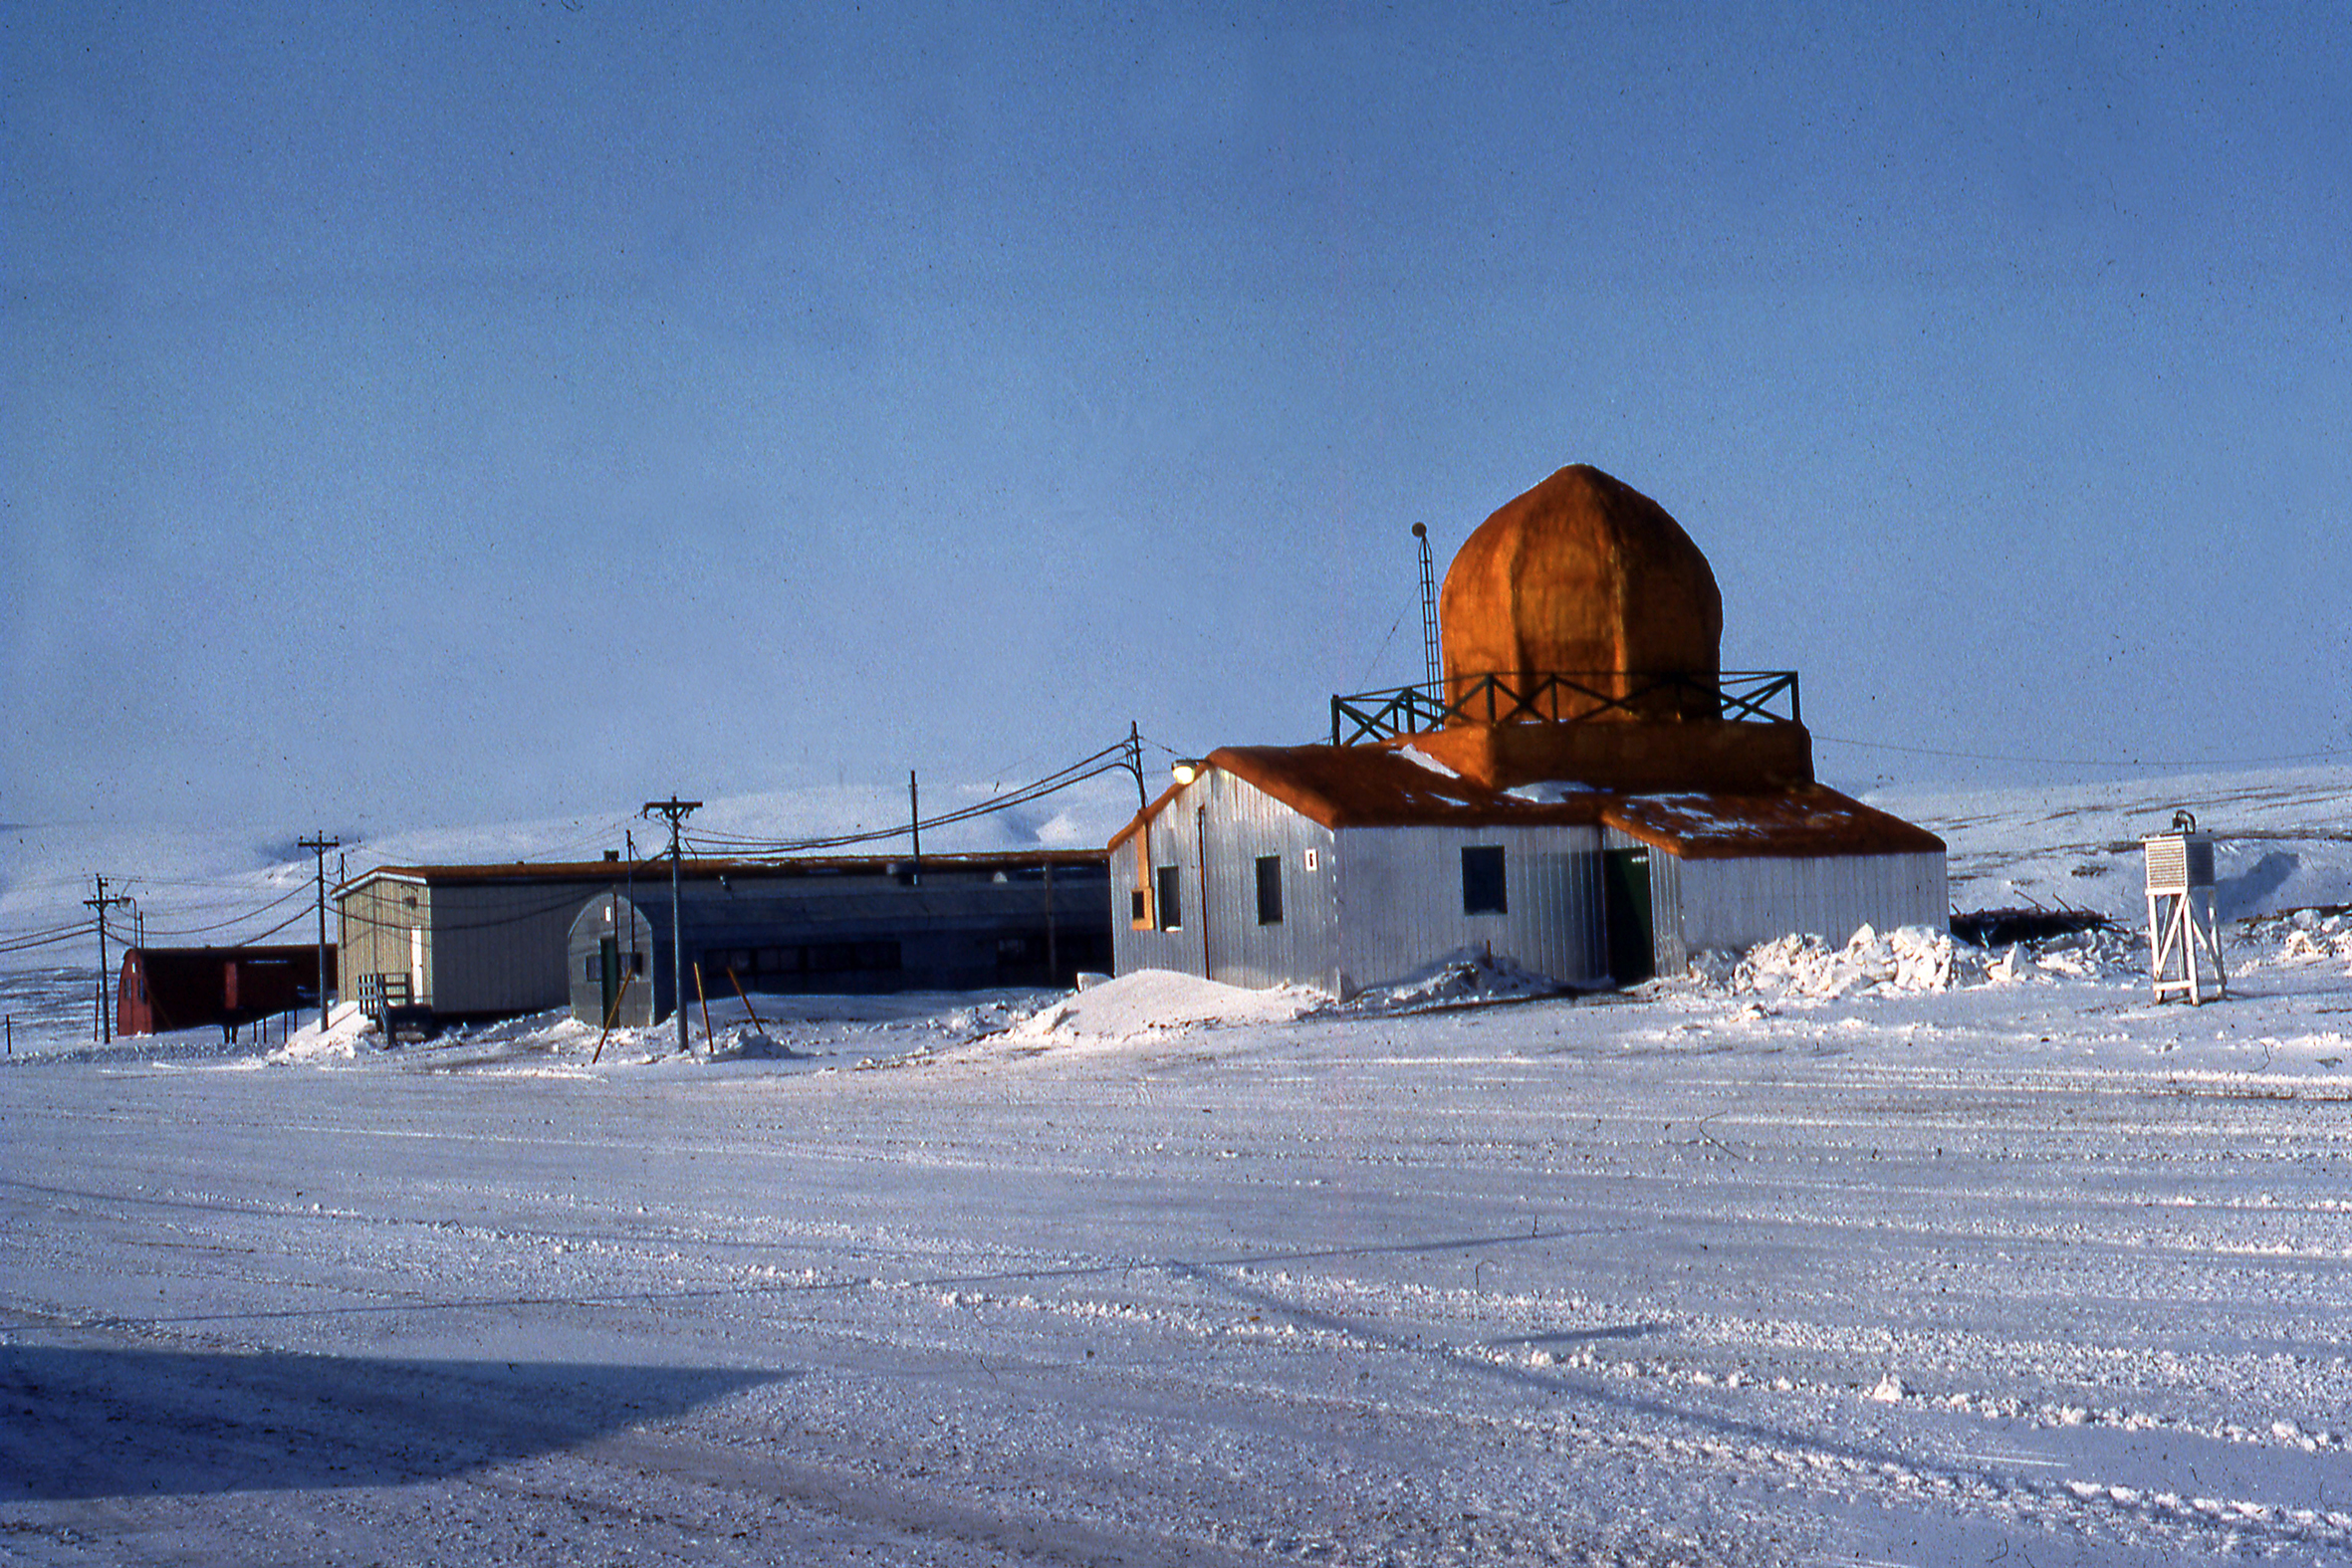 Eureka, Nunavut, radar ballon météologique, Weather balloon tracking radar, 1983